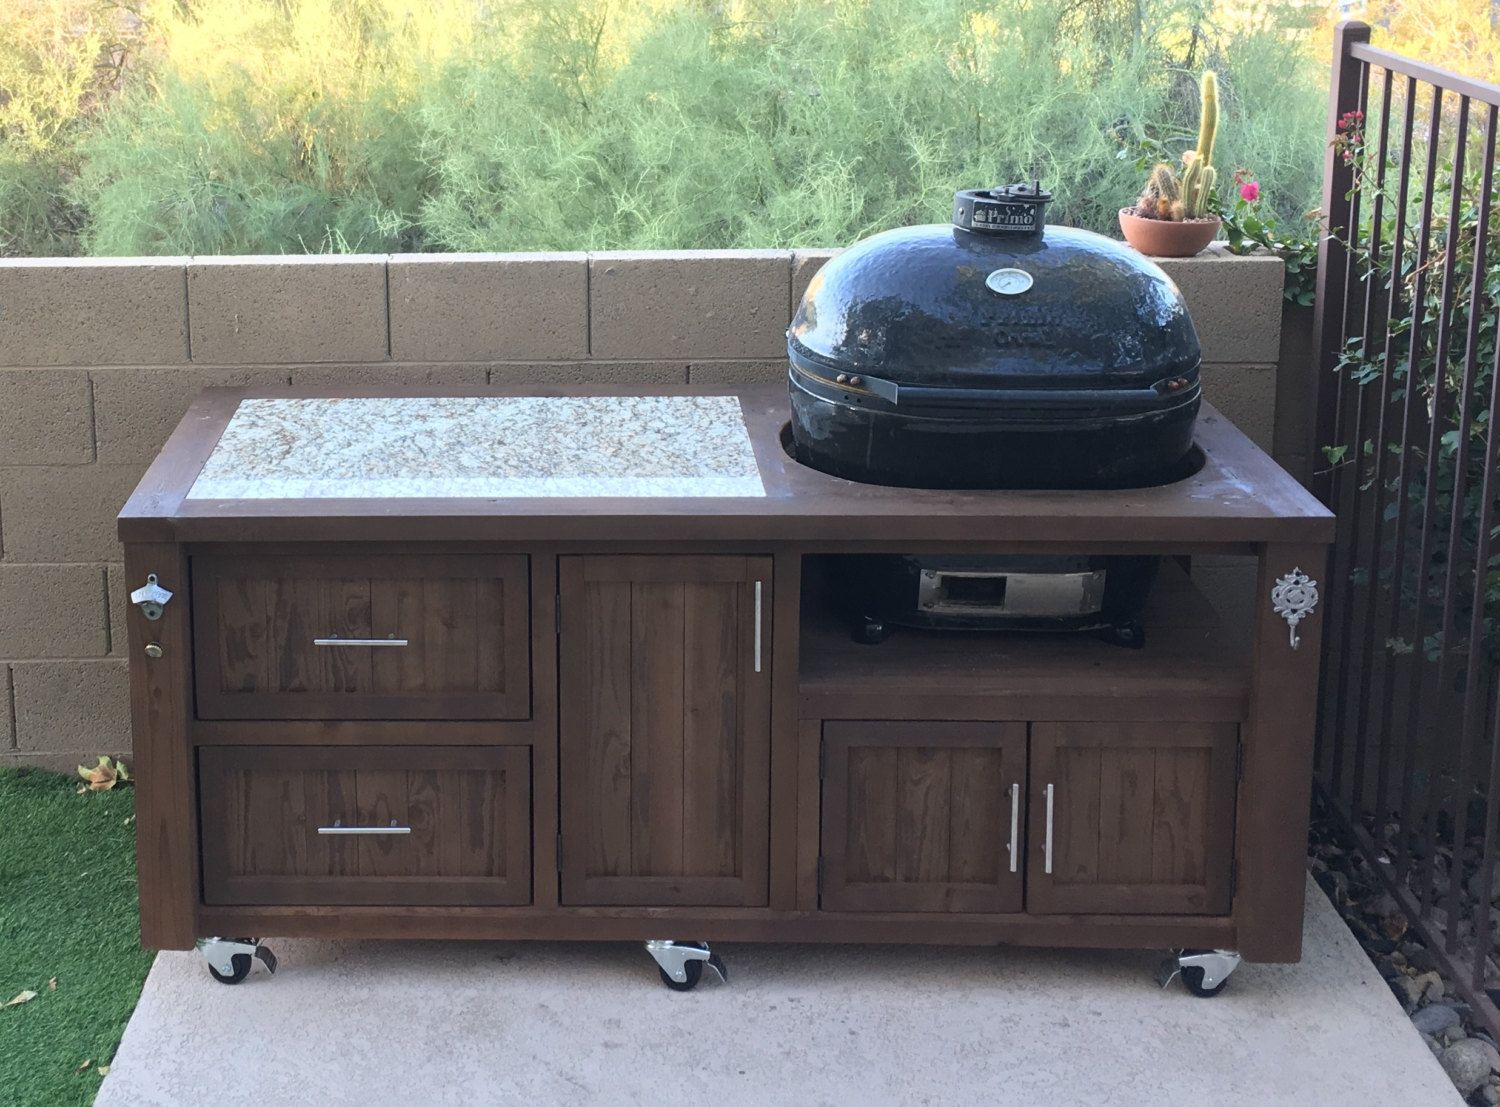 Primo Grill Cabinet Outdoor Kitchen Rolling Cart Table Island Station Do Ceramic By Rusticwoodworx On